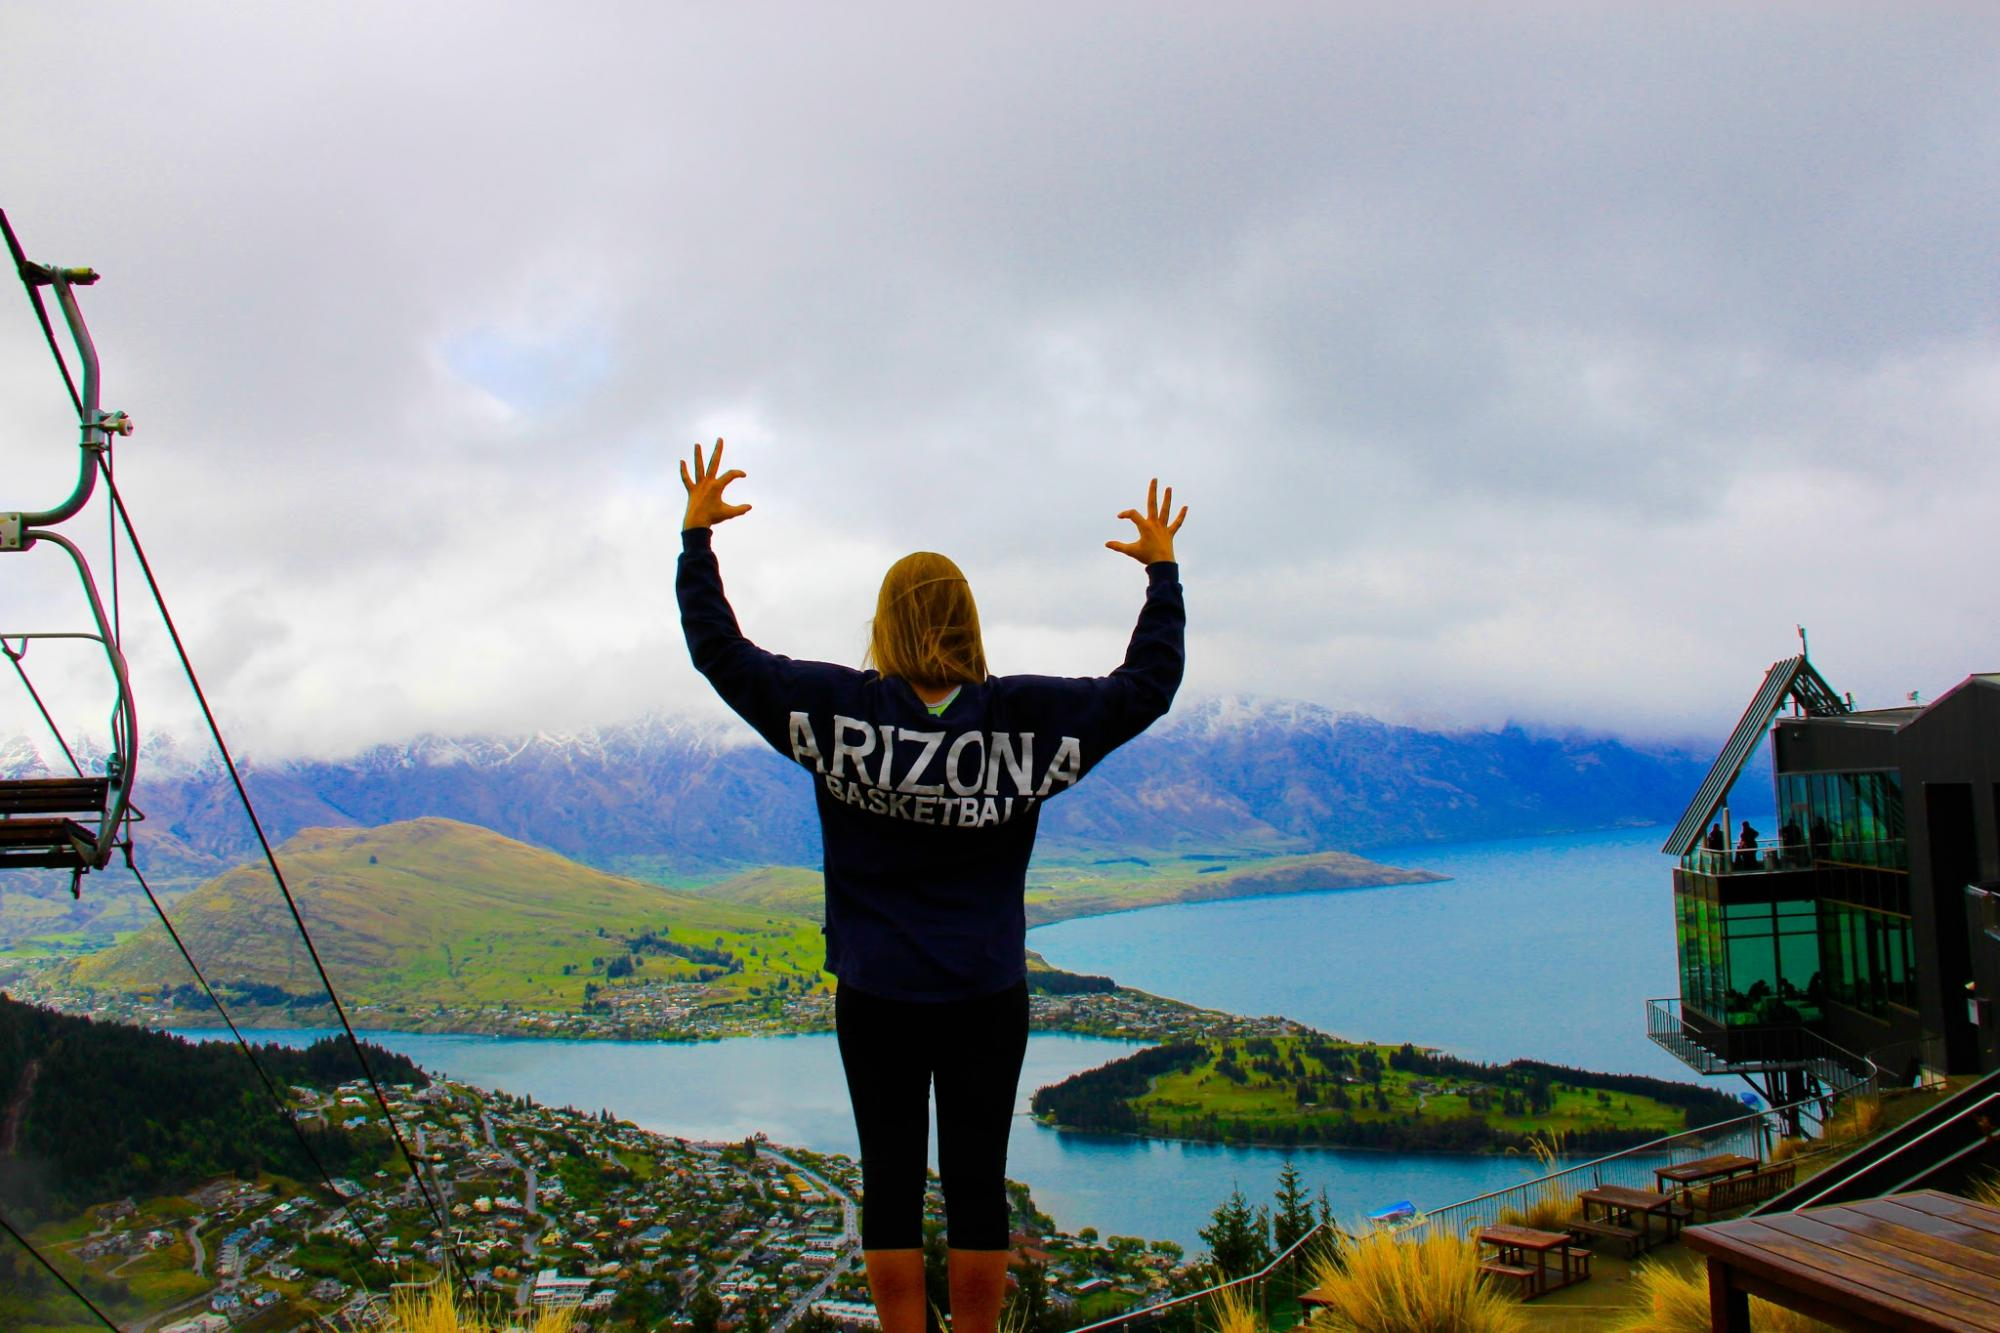 Lexy Davis, a 2016 graduate with a degree in care, health and society, has the Wildcat spirit atop the Skyline Gondola in New Zealand. The UA offers programs in New Zealand that allow students to explore engineering, architecture, ecotourism and other top